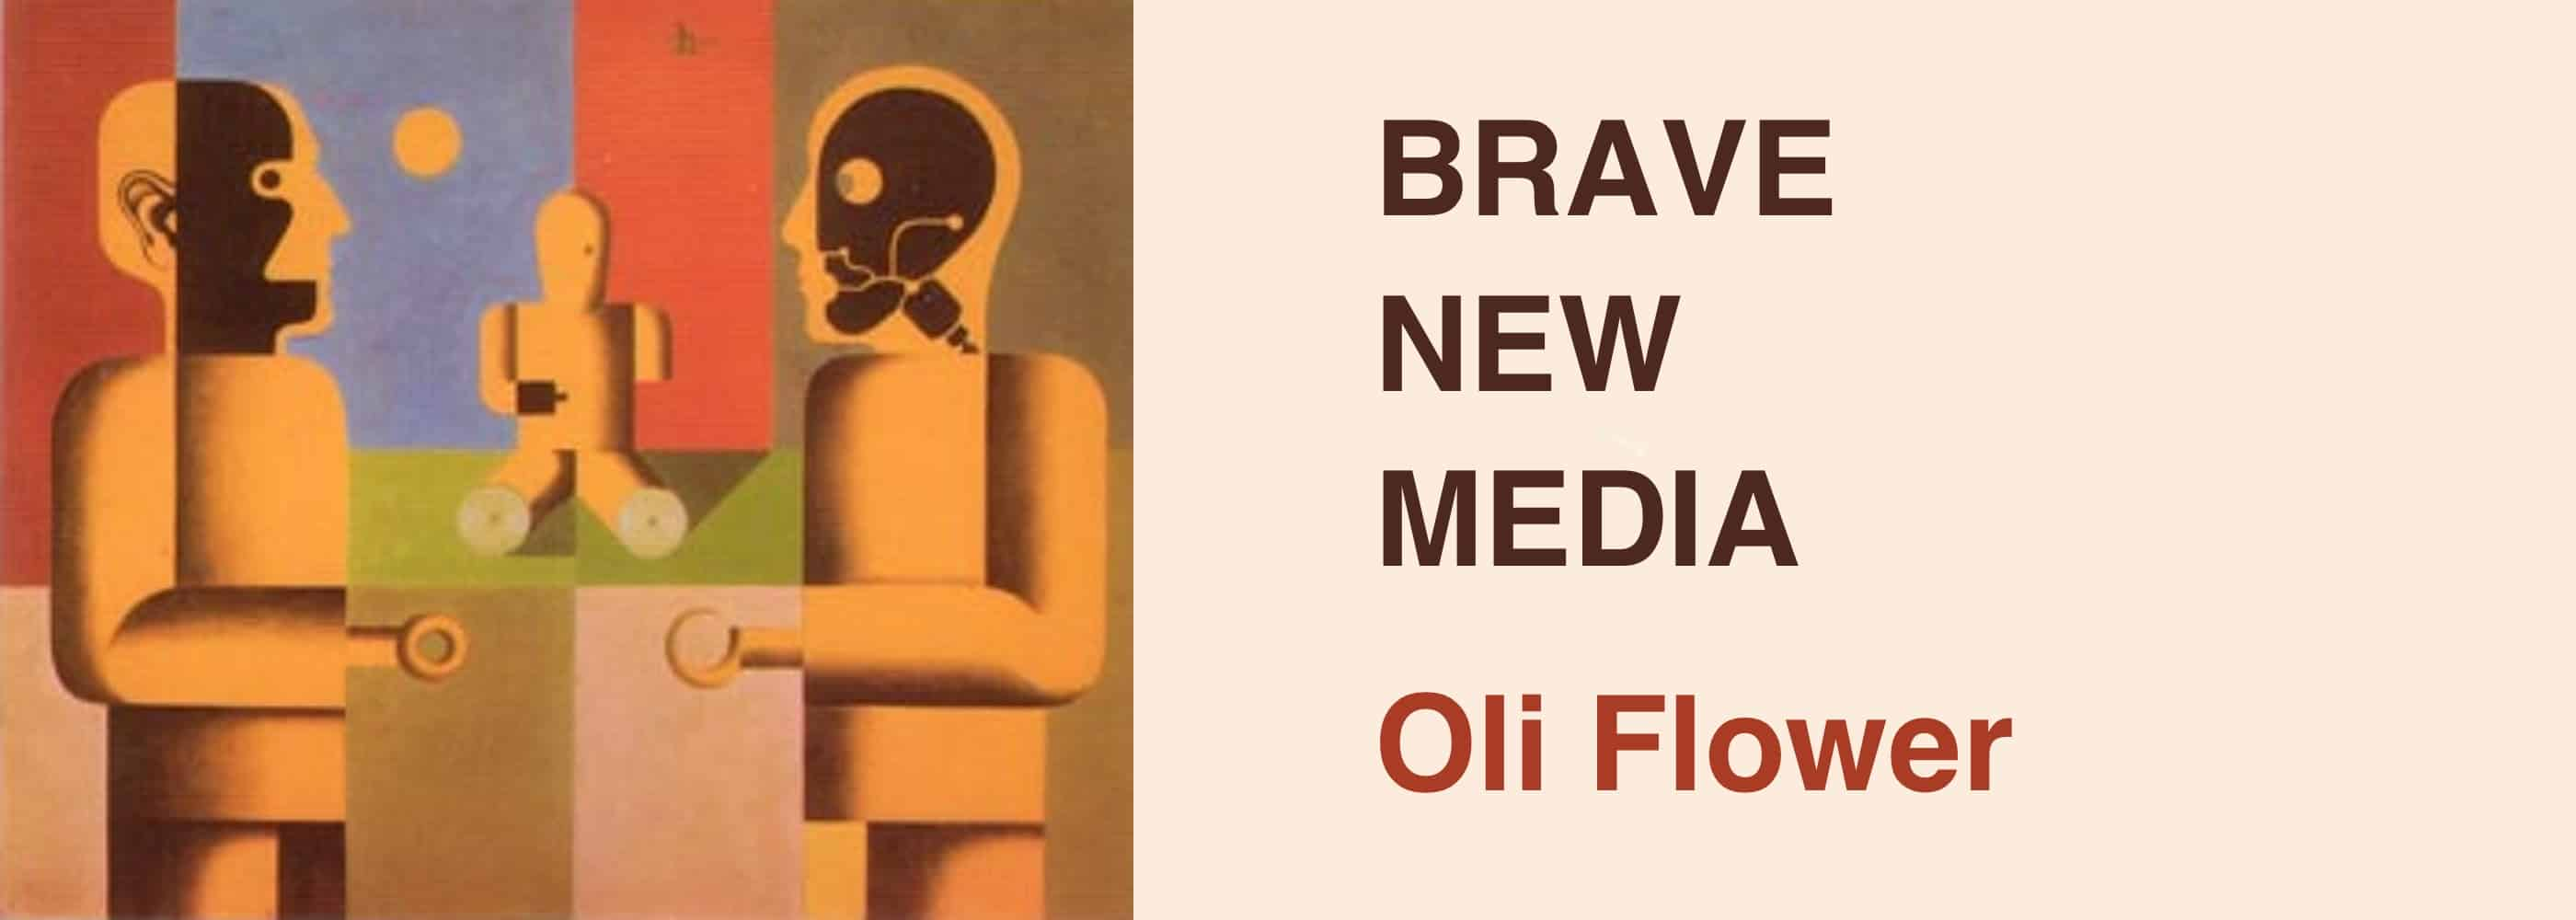 brave new media by oli flower